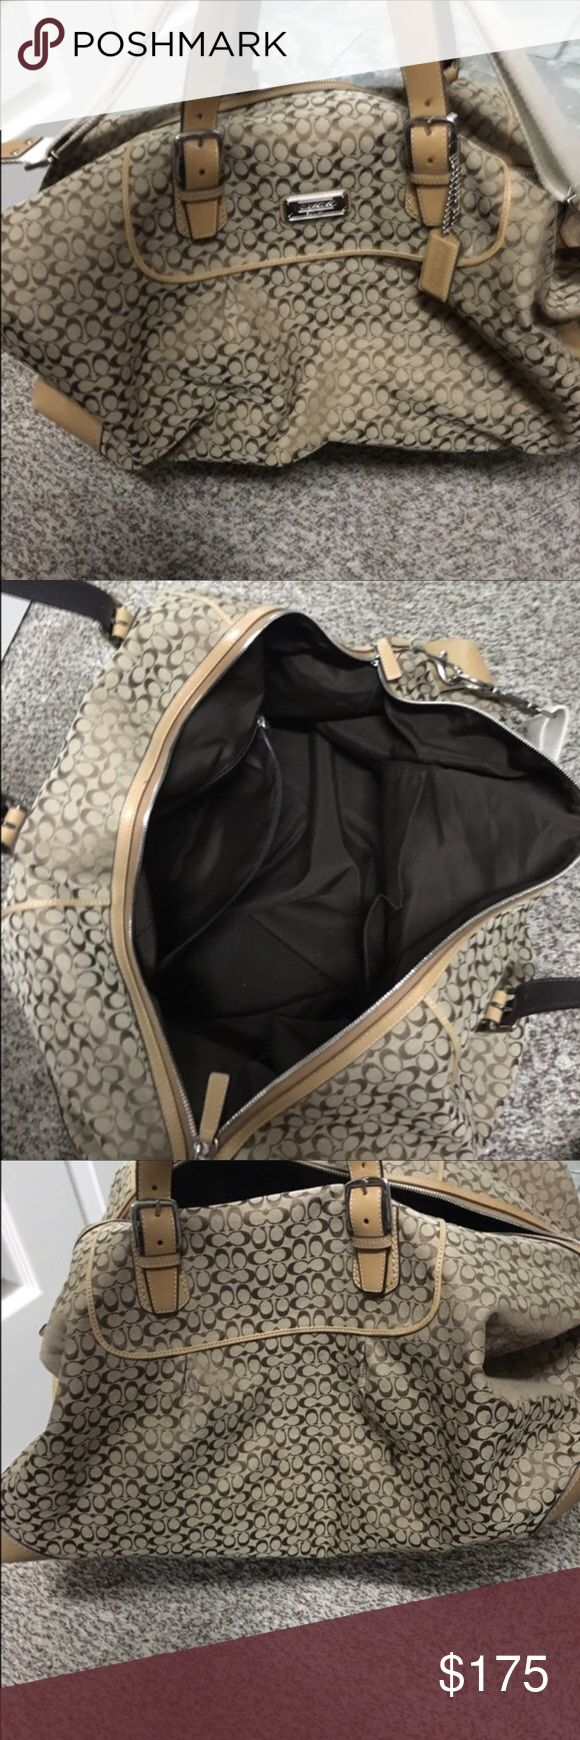 COACH TRAVEL BAG Gently used, Large authentic Coach Travel Bag.  Excellent condition.  Strap included. No stains.  Willing to negotiate. Coach Bags Travel Bags